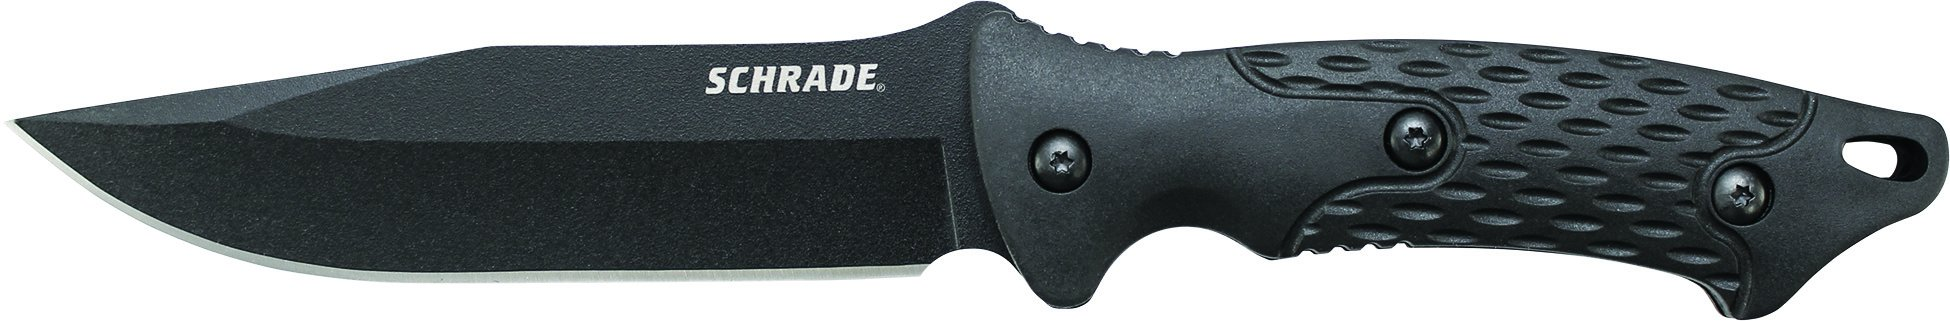 Schrade SCHF30 Full Tang Clip Point Fixed Blade Knife by Schrade (Image #2)